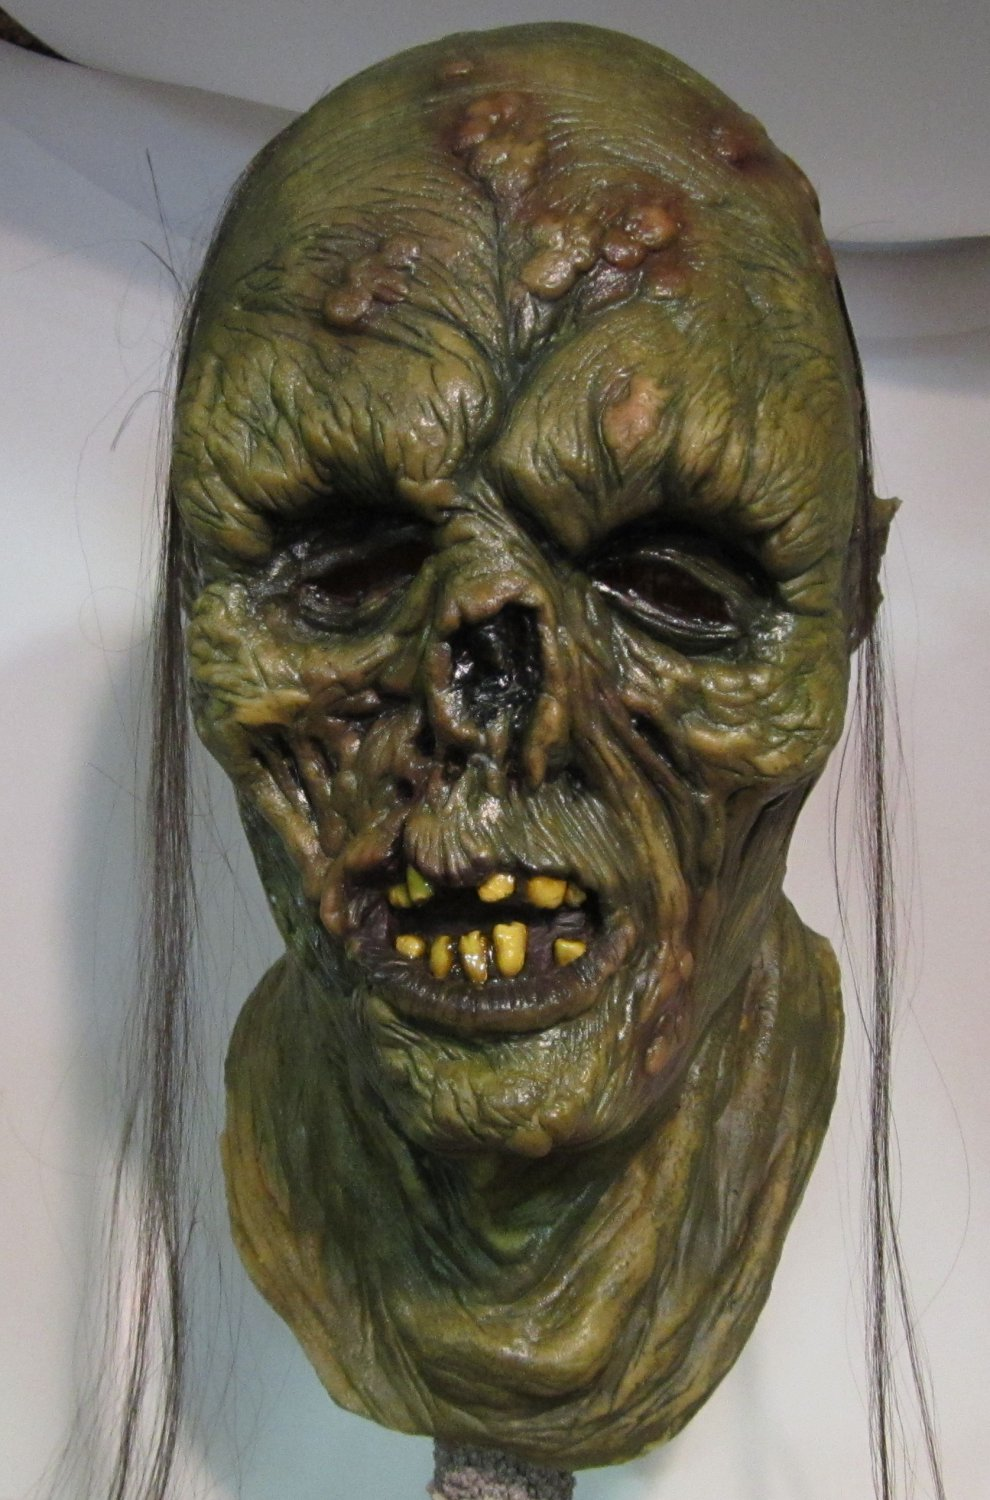 Decayed Flesh Rotting Corpse Zombie Undead Walking Dead